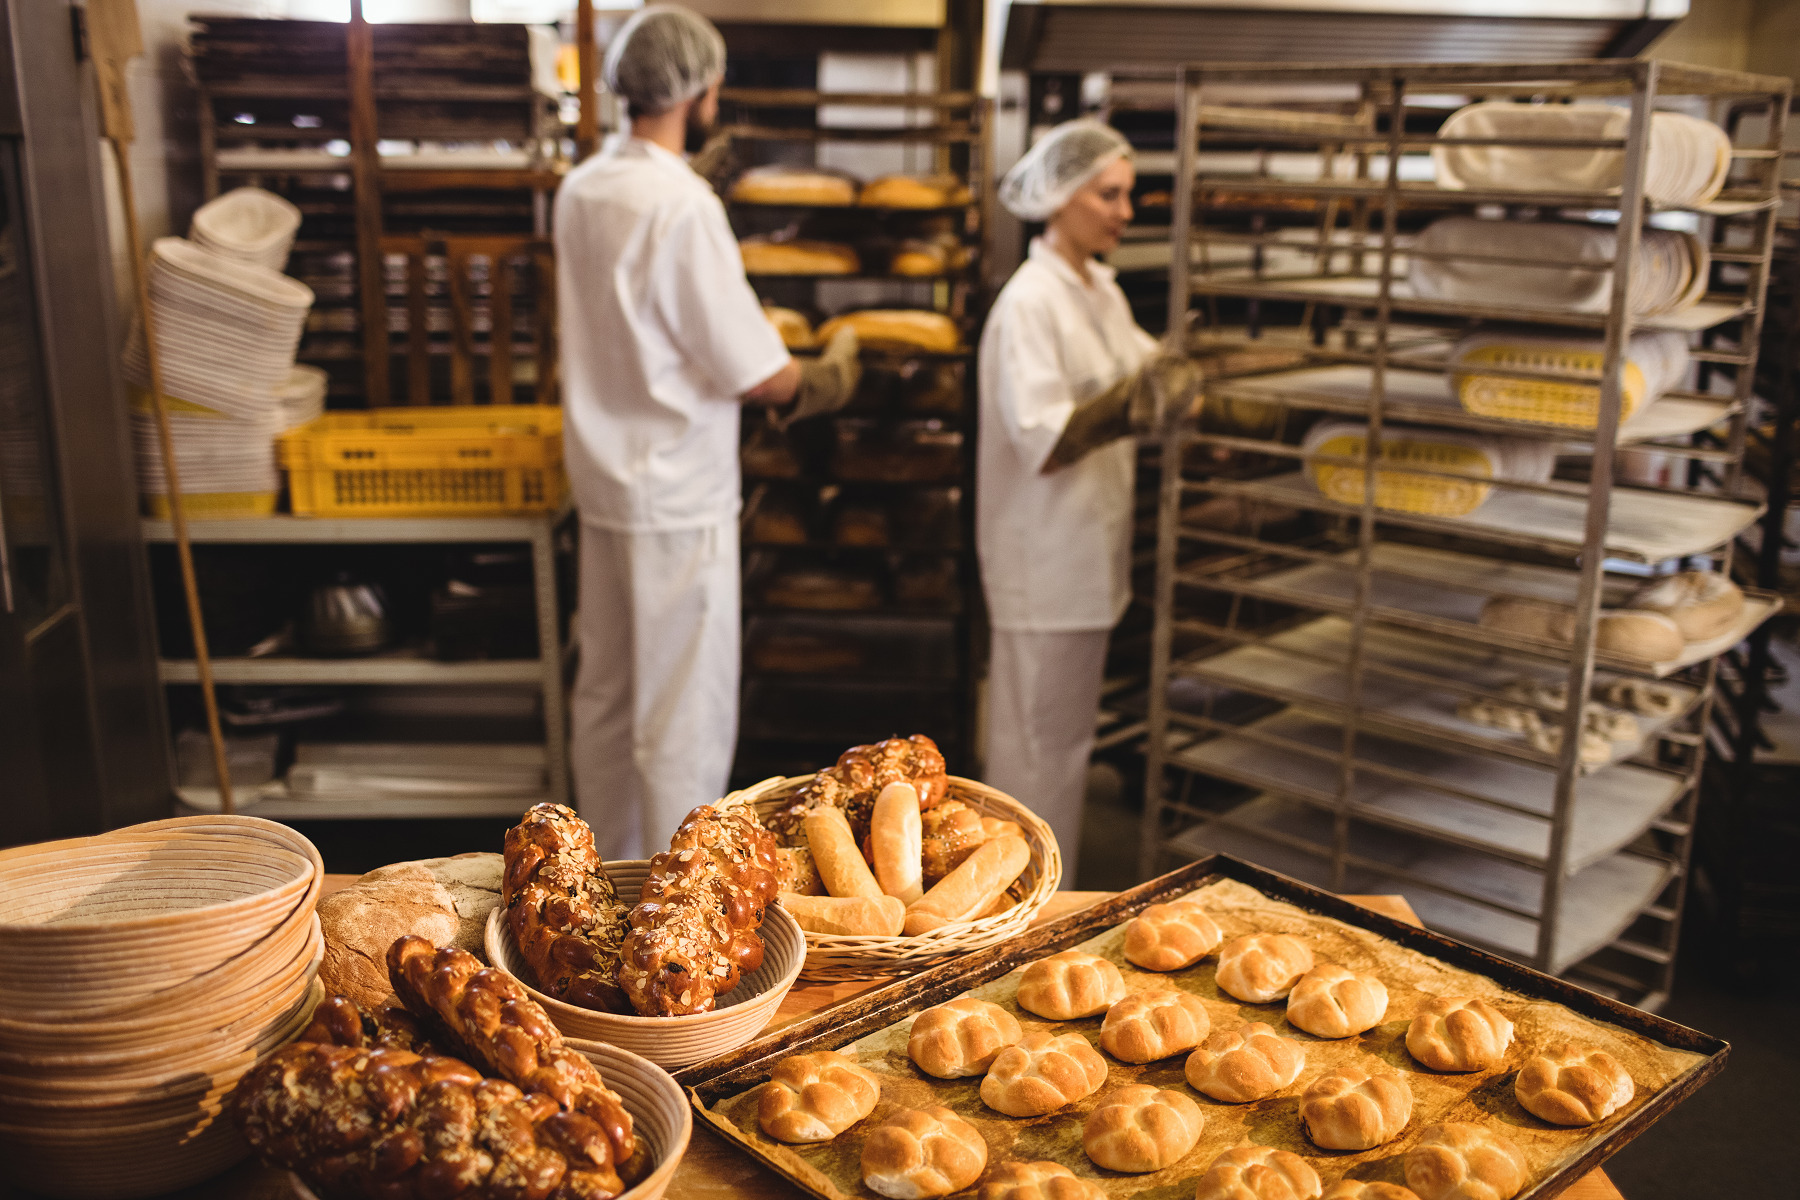 Profitable Wholesale Bakery Business in the UK